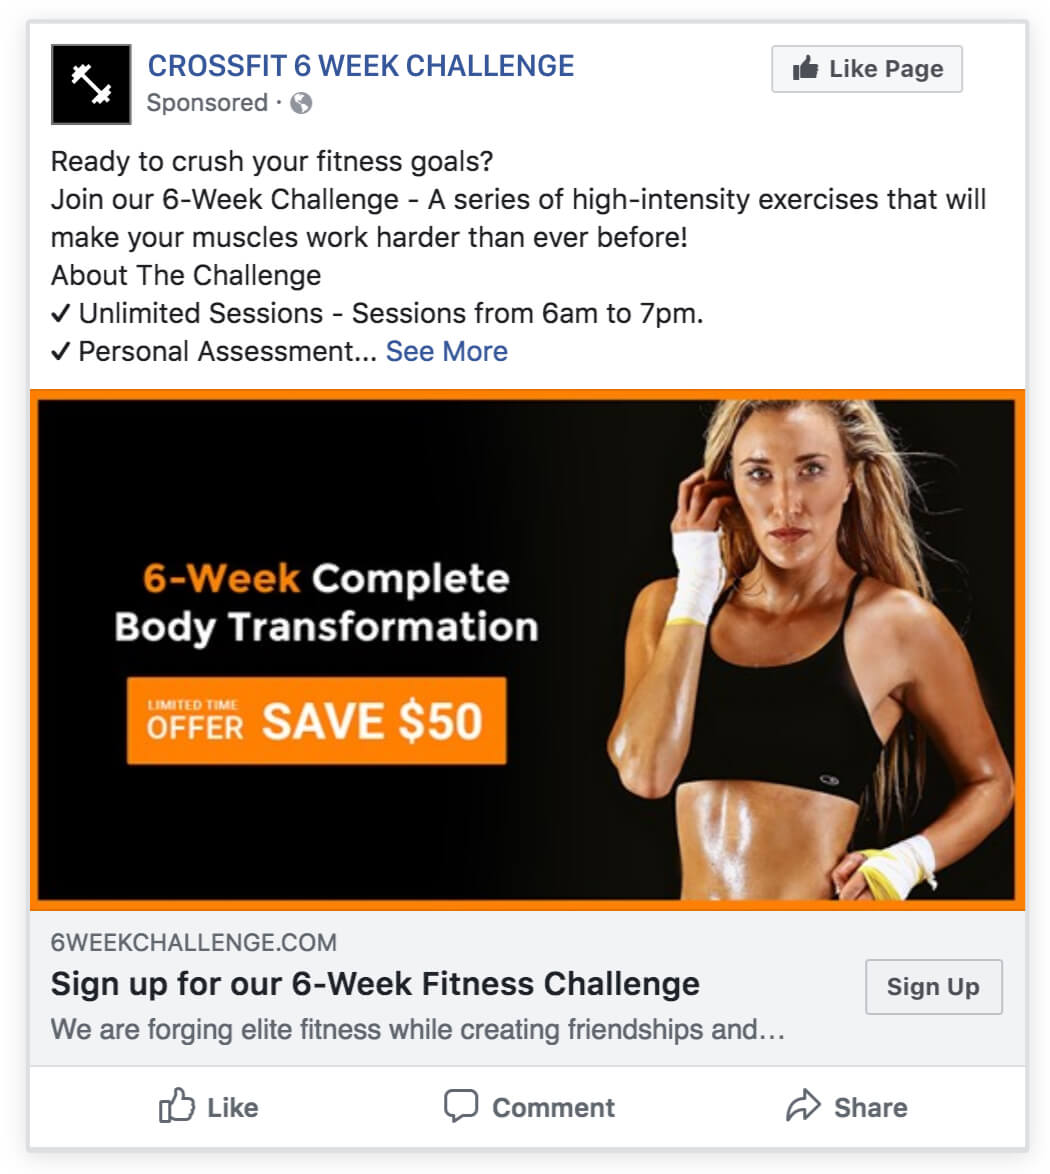 6-week fitness crossfit challenge facebook ad